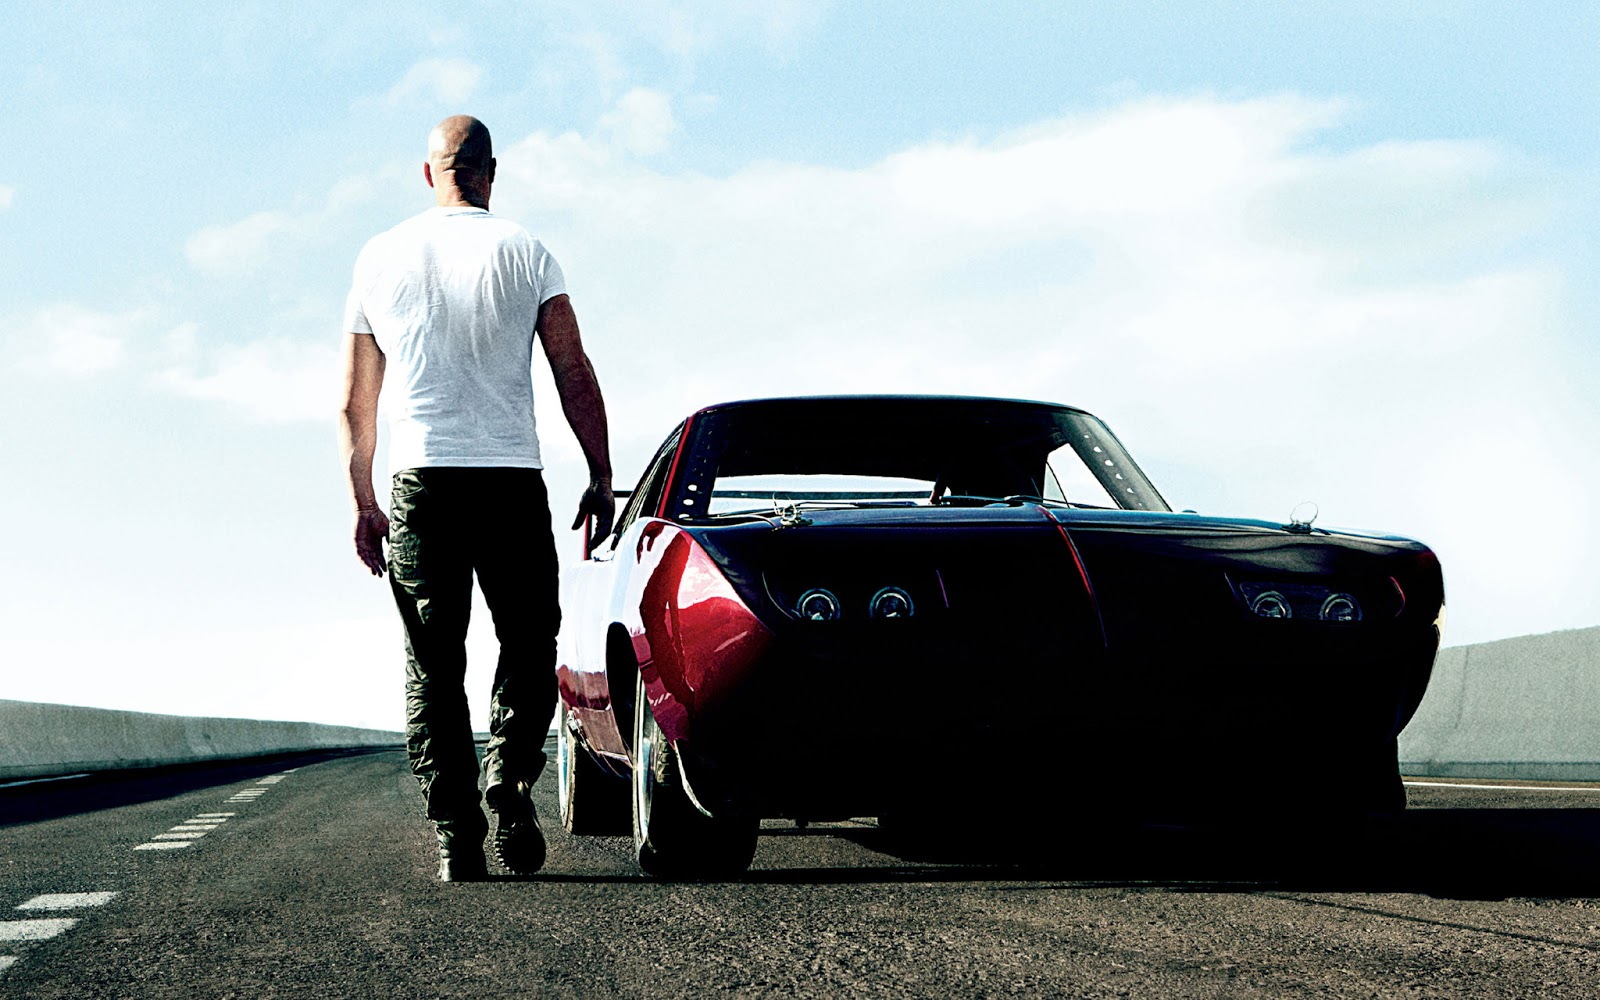 fast and furious 6 vin diesel wallpaper picture of vin diesel in fast - Fast And Furious 6 Cars Wallpapers